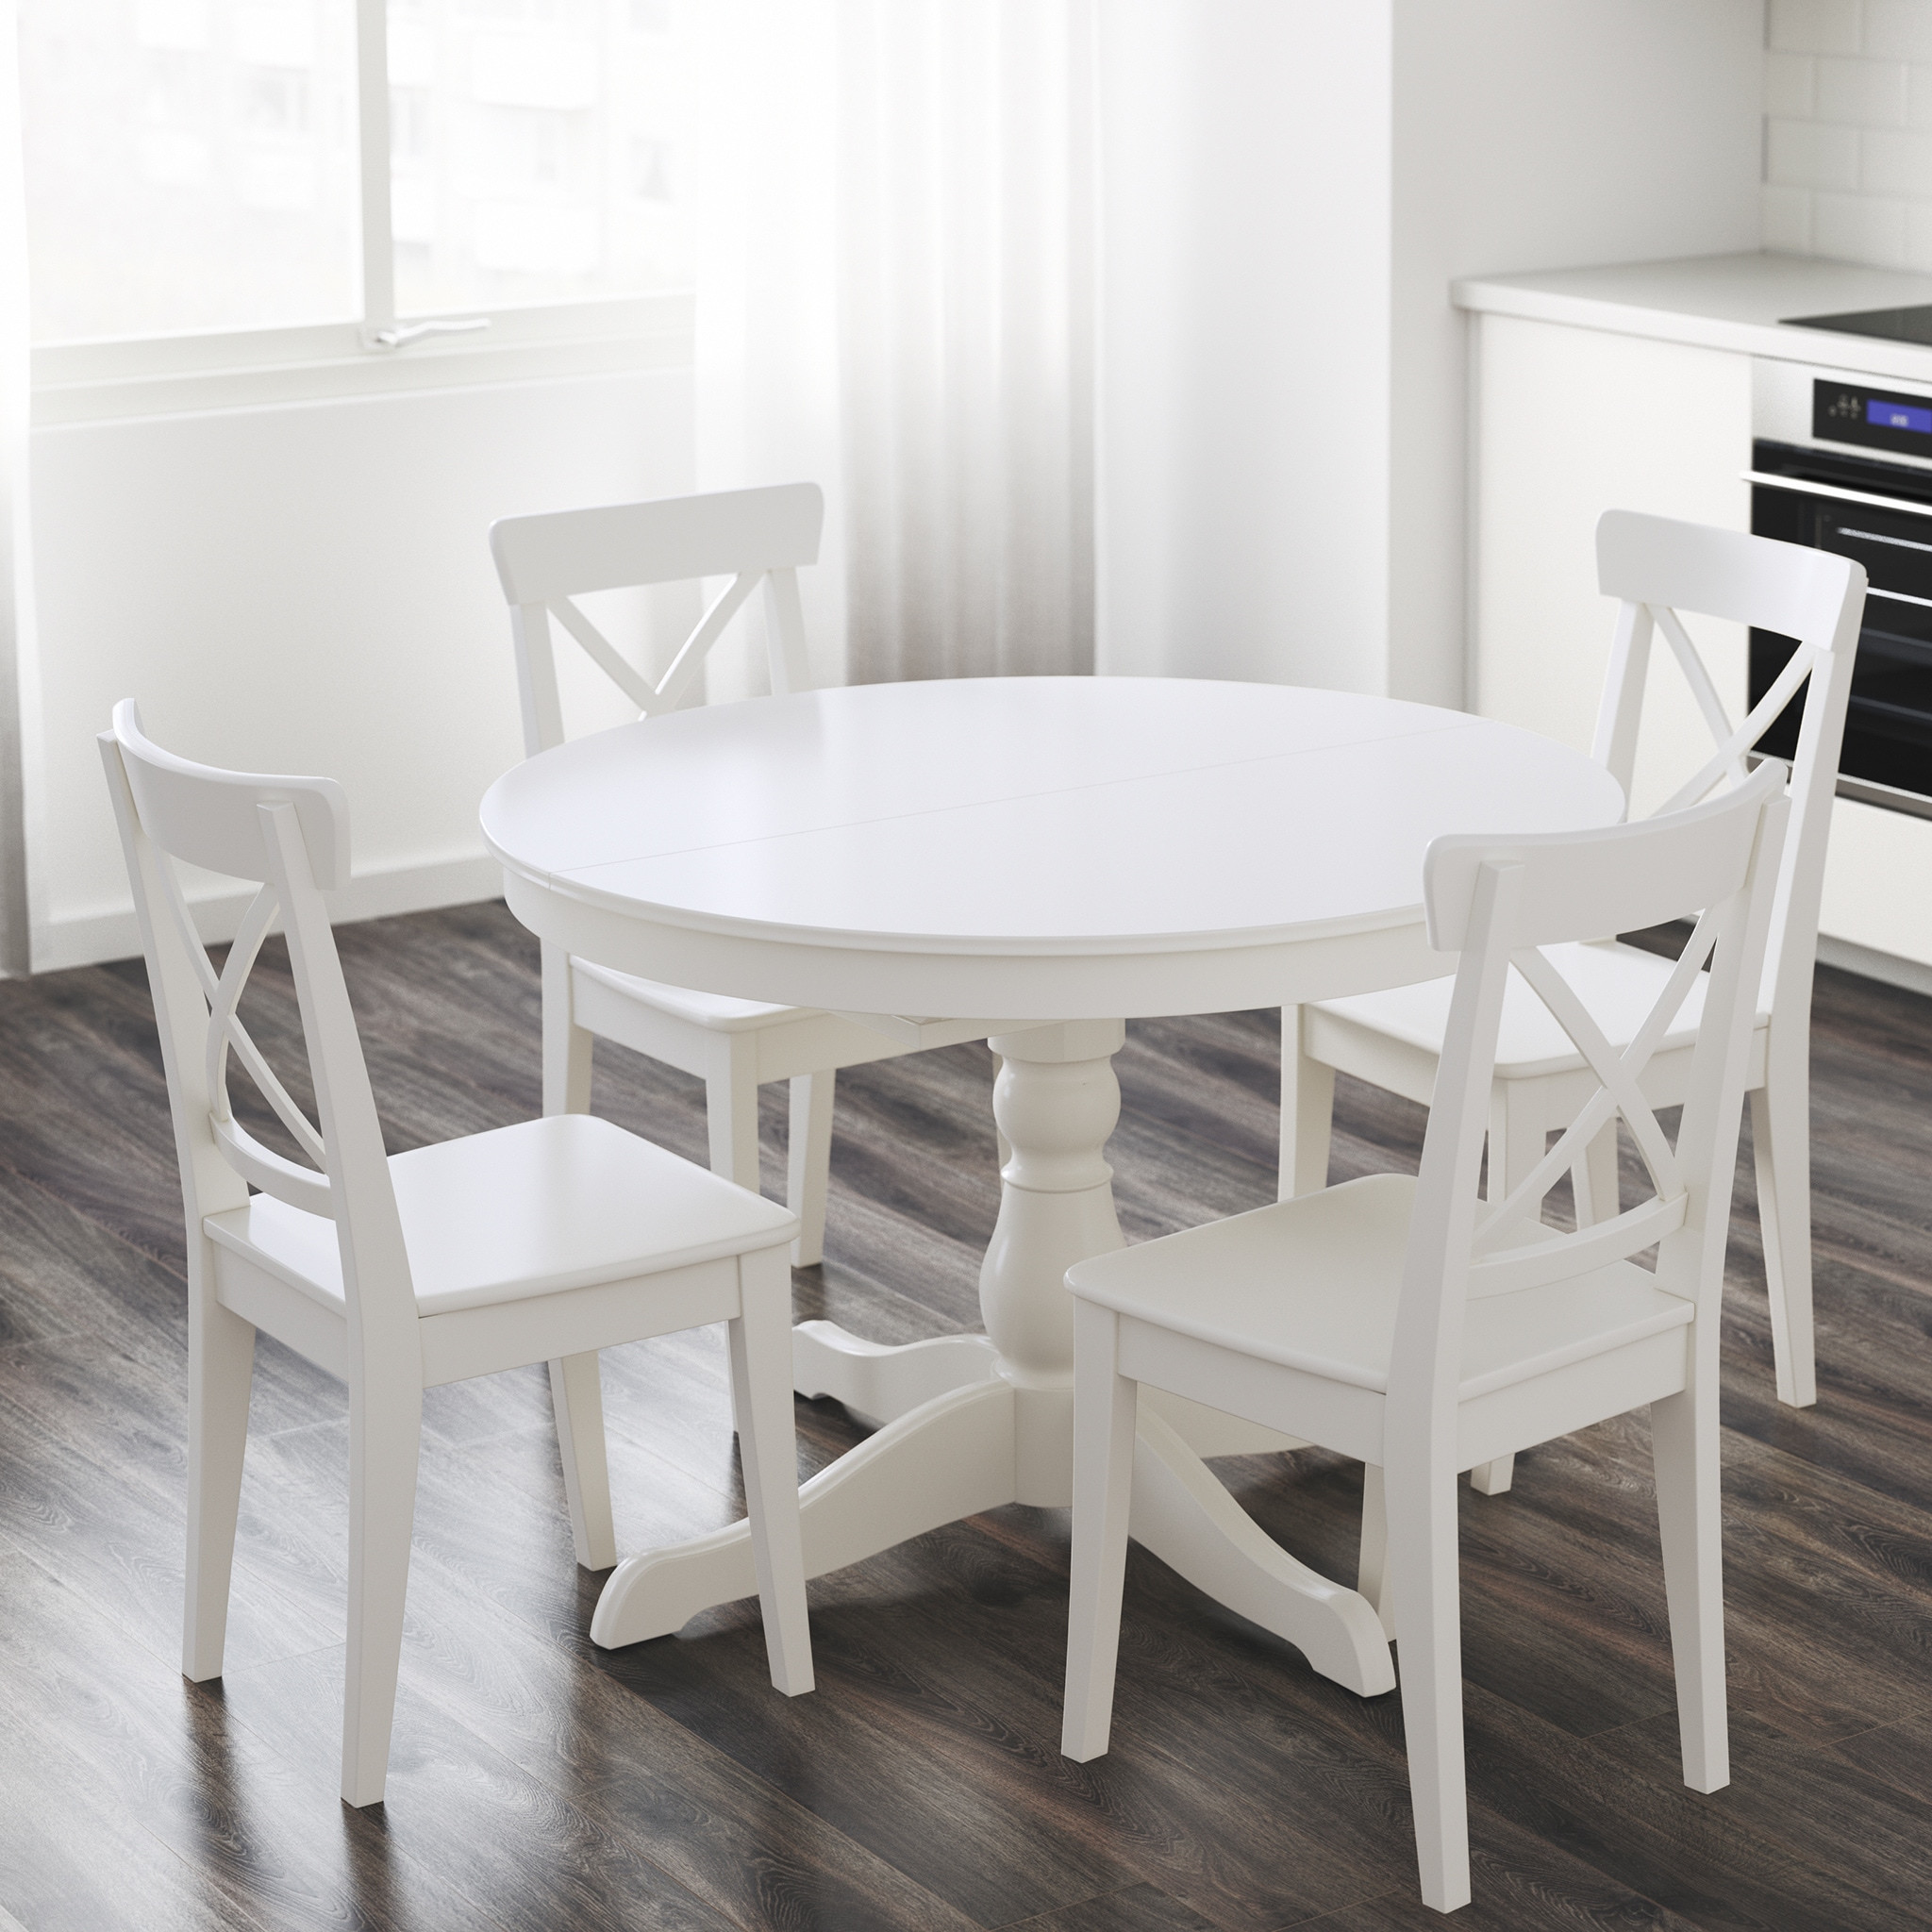 Best ideas about Ikea Dining Room Tables . Save or Pin Dining Tables & Kitchen Tables Dining Room Tables Now.